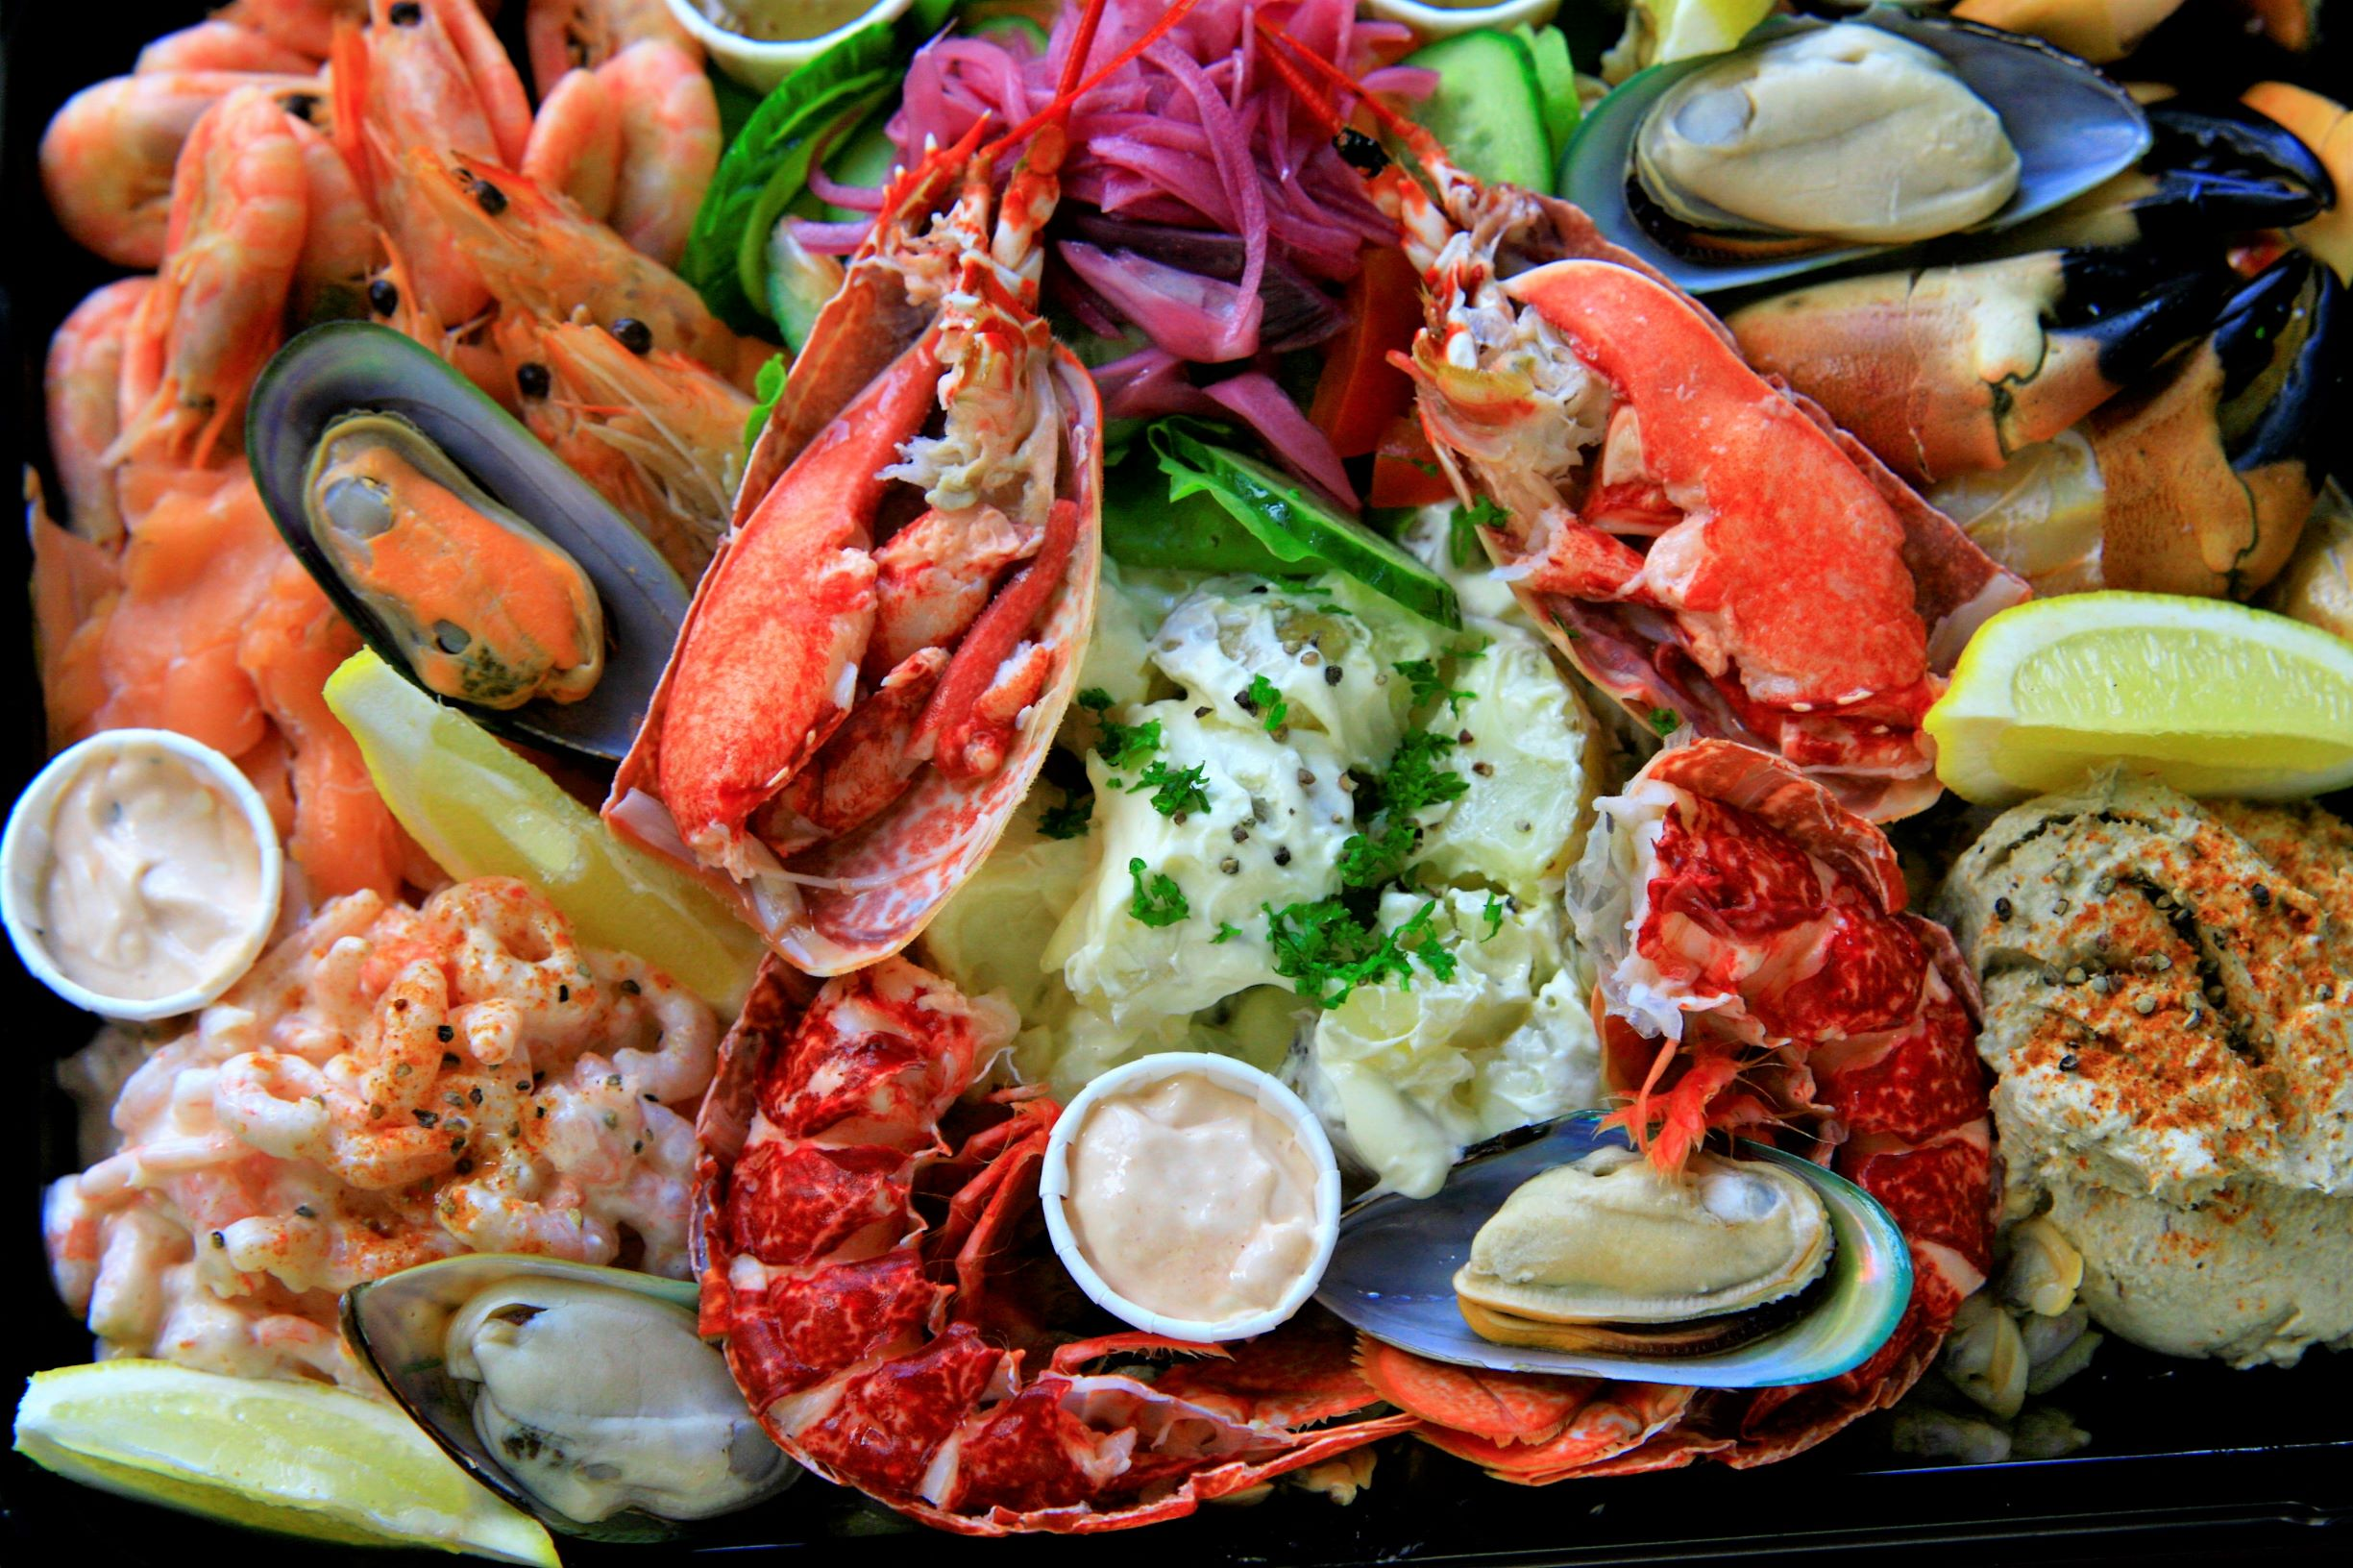 Lobster Platter Serves 4 (Email for availability)